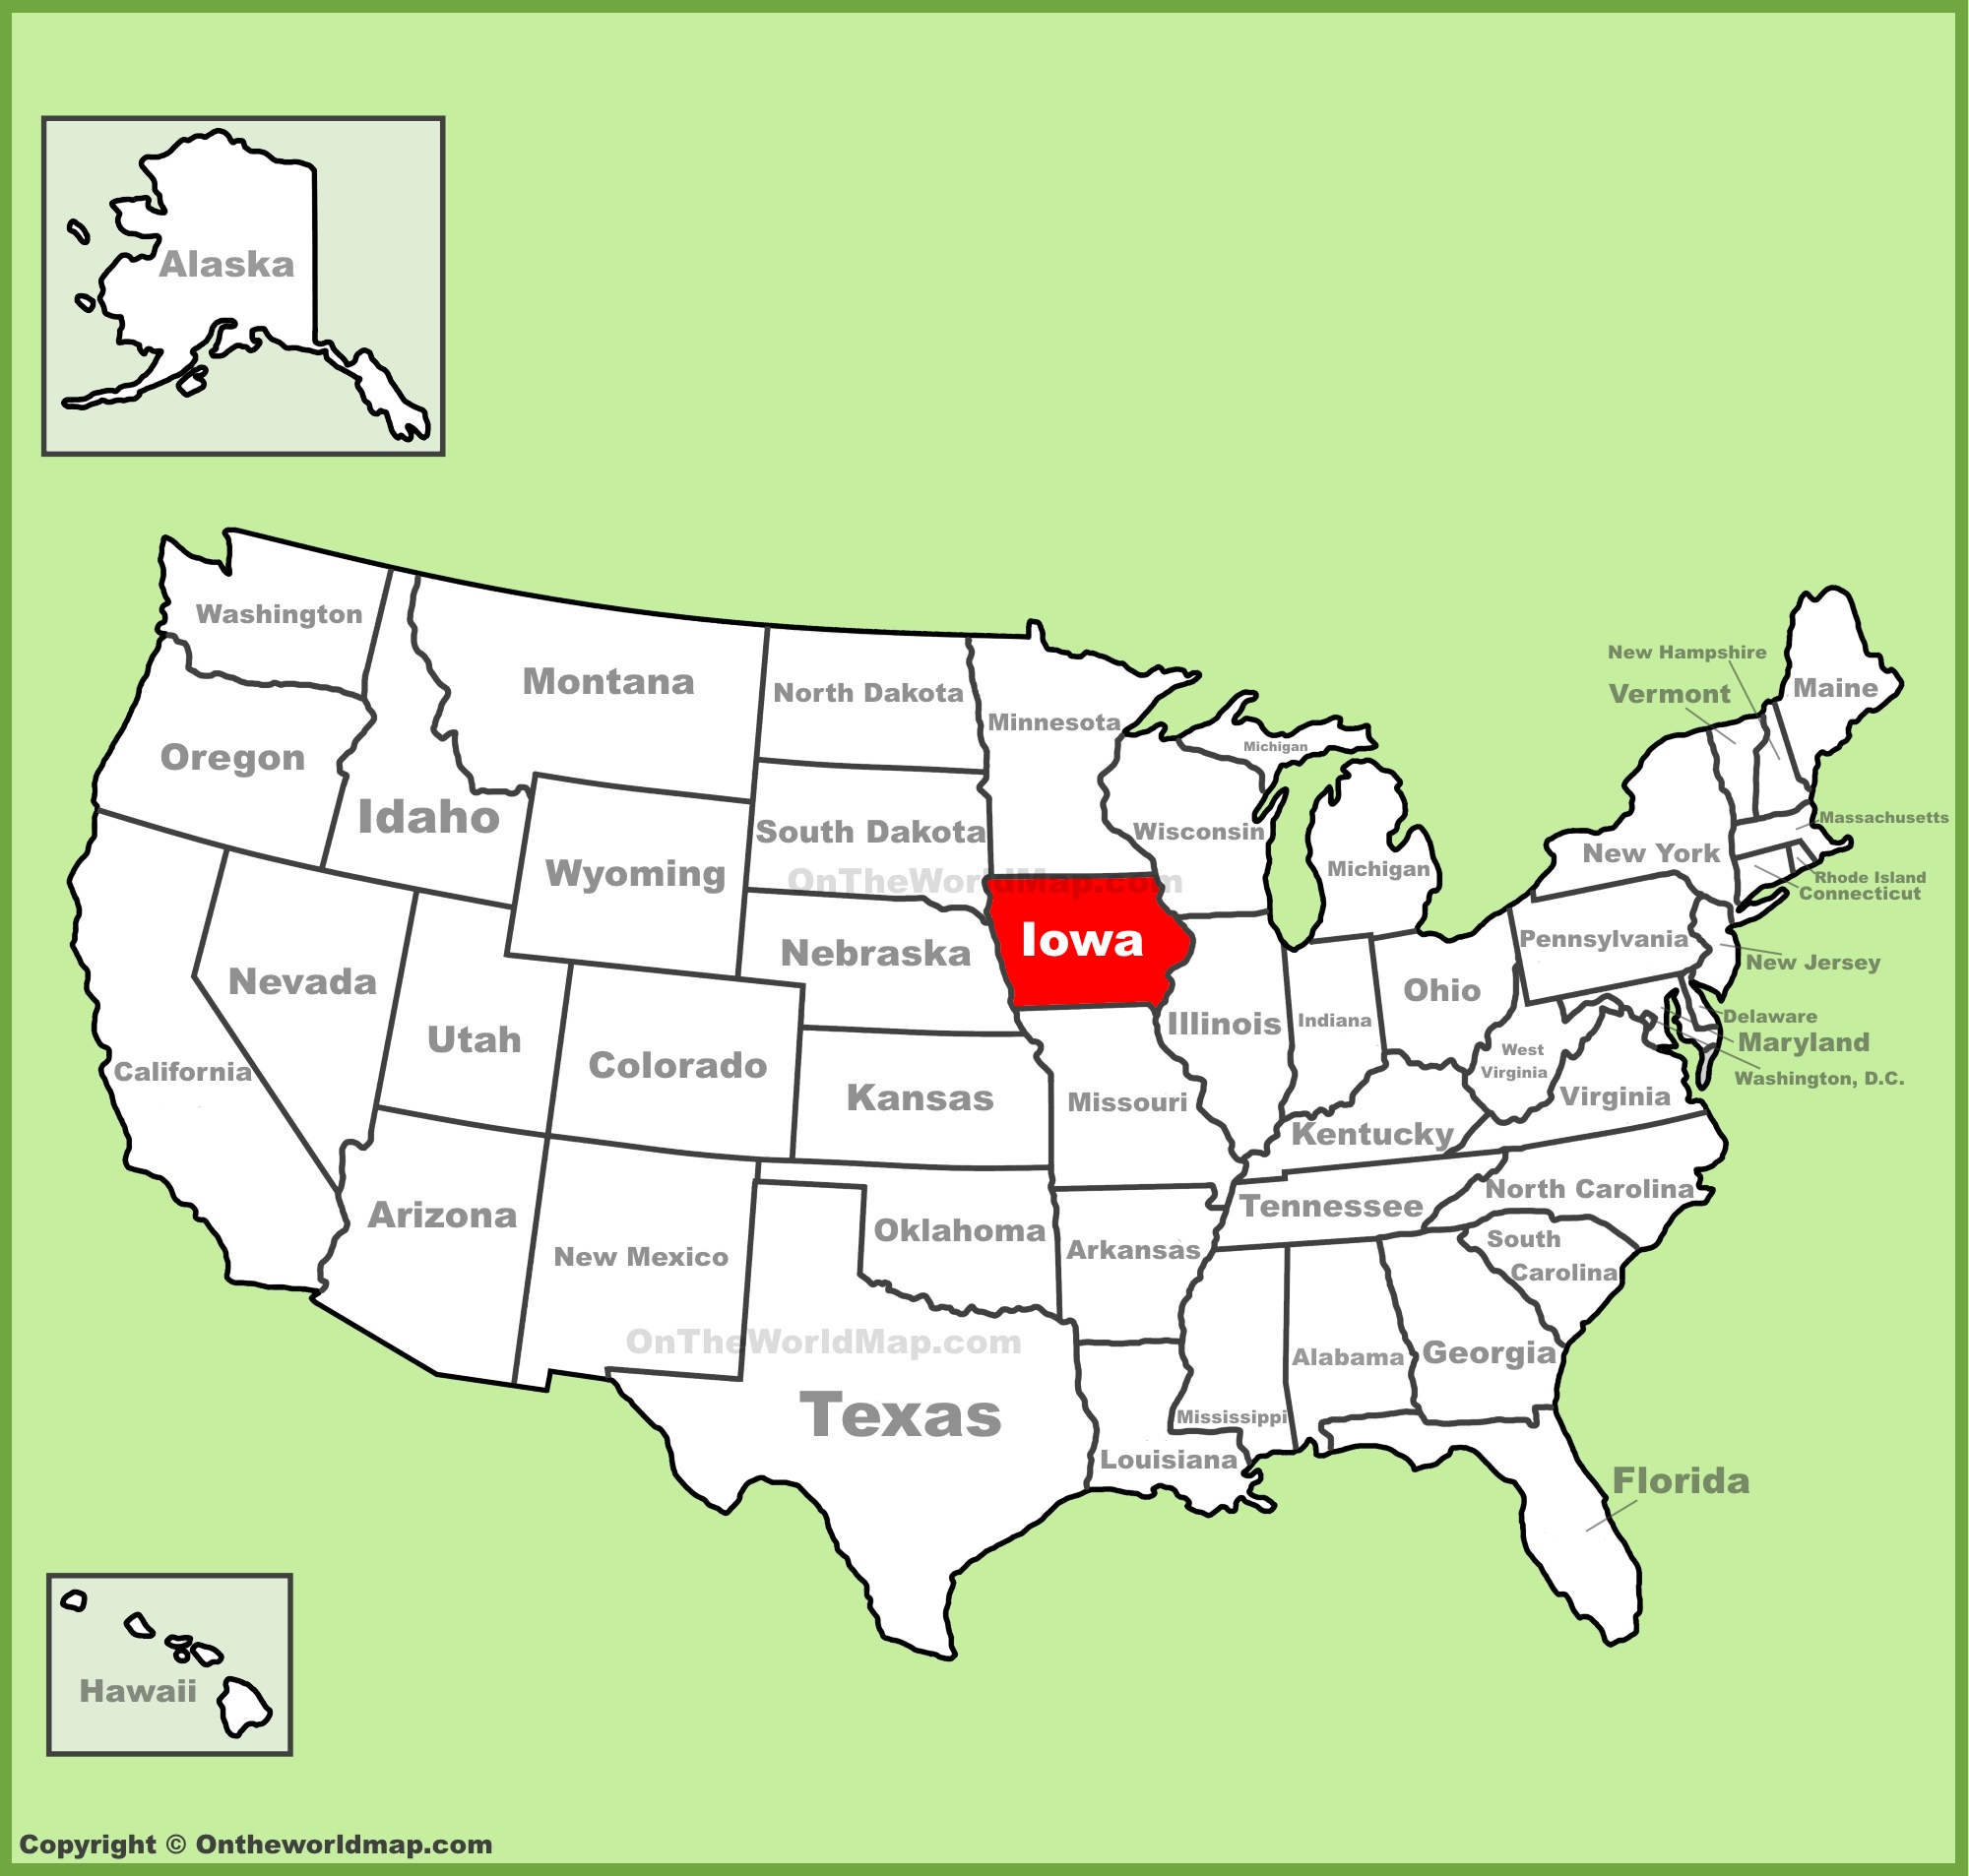 Iowa State Maps USA Maps Of Iowa IA - Iowa usa map